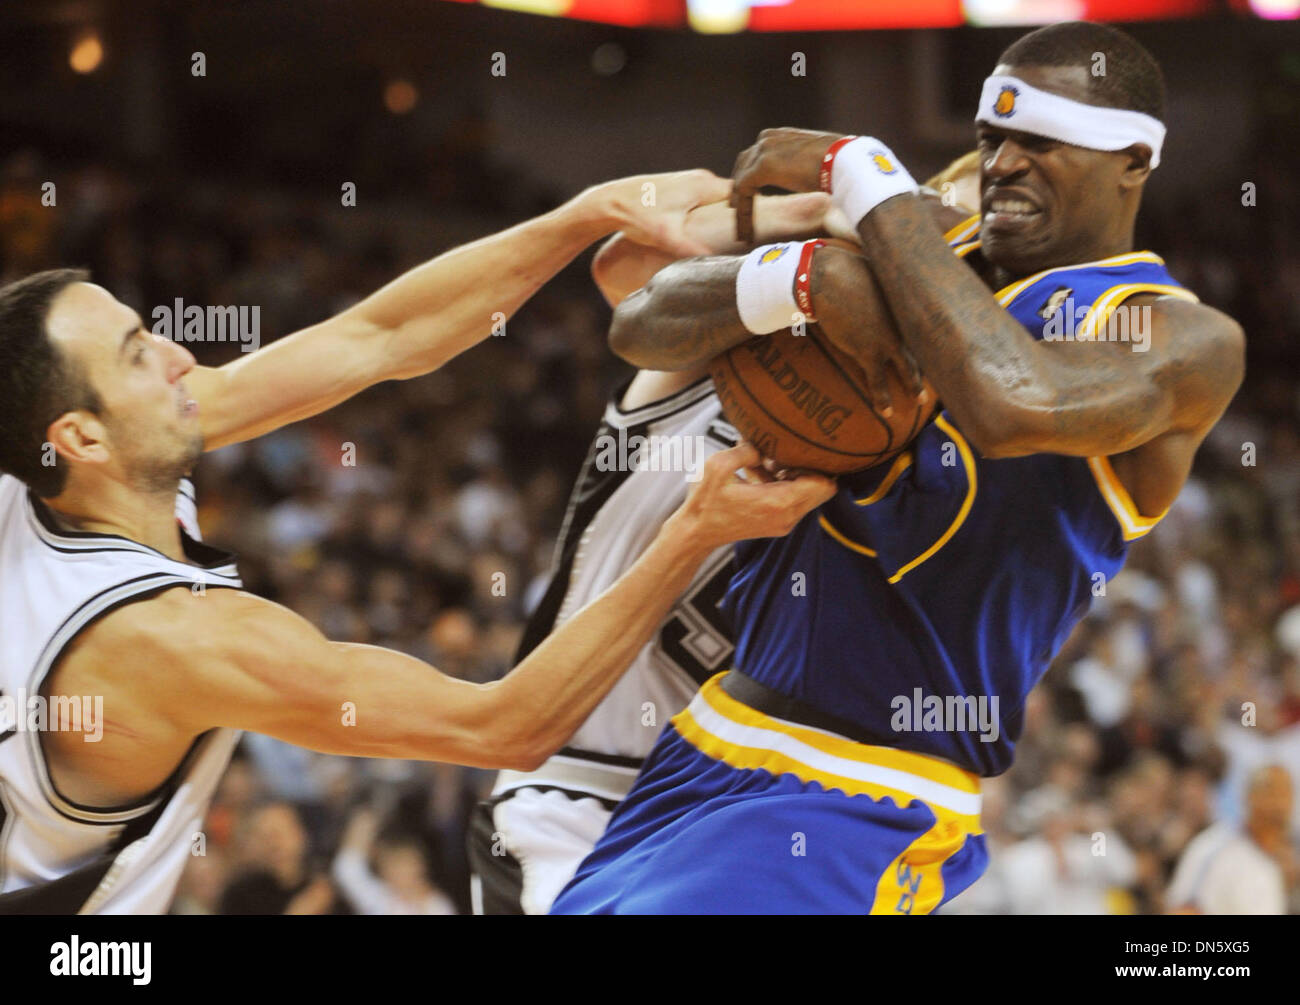 a338f9812 San Antonio Spurs Manu Ginobili and Golden State Warriors Stephen Jackson  fight for the ball in